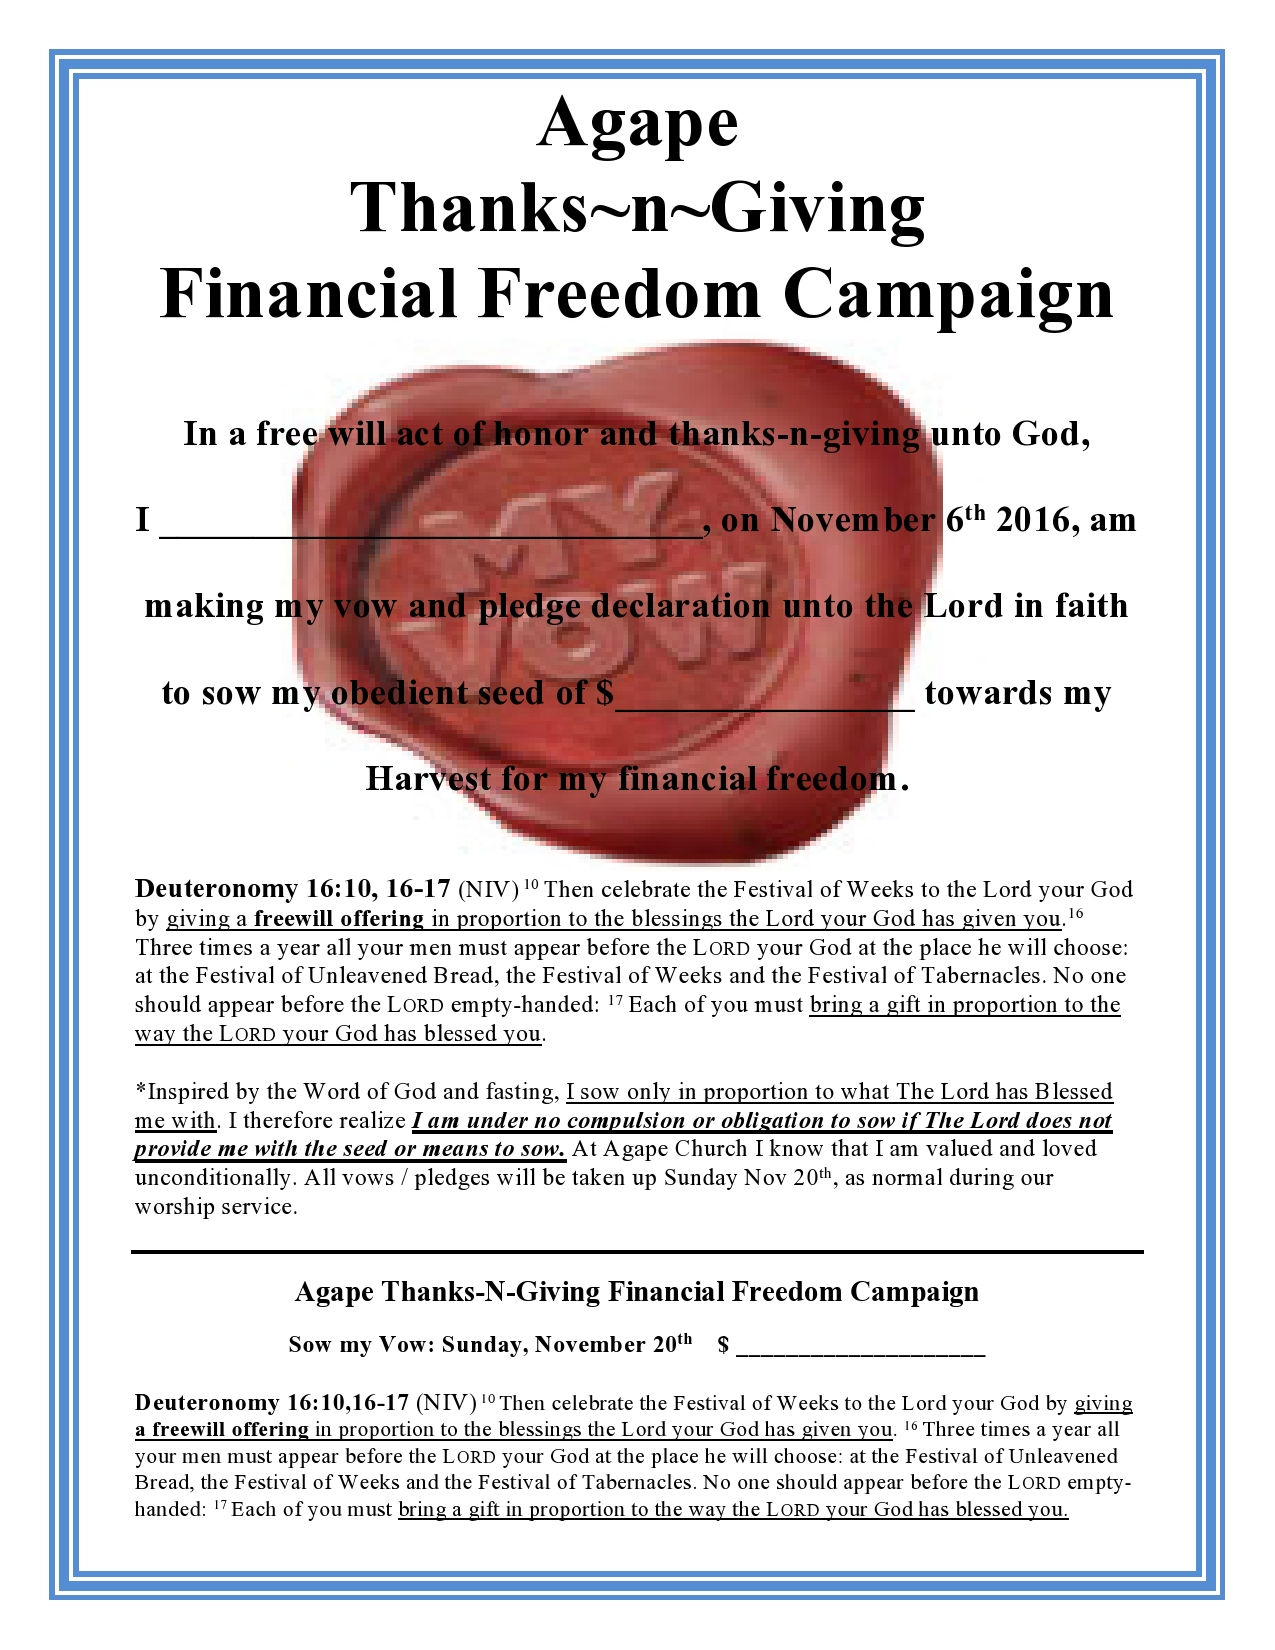 Thanks-n-Giving2016 Pledge Card Online